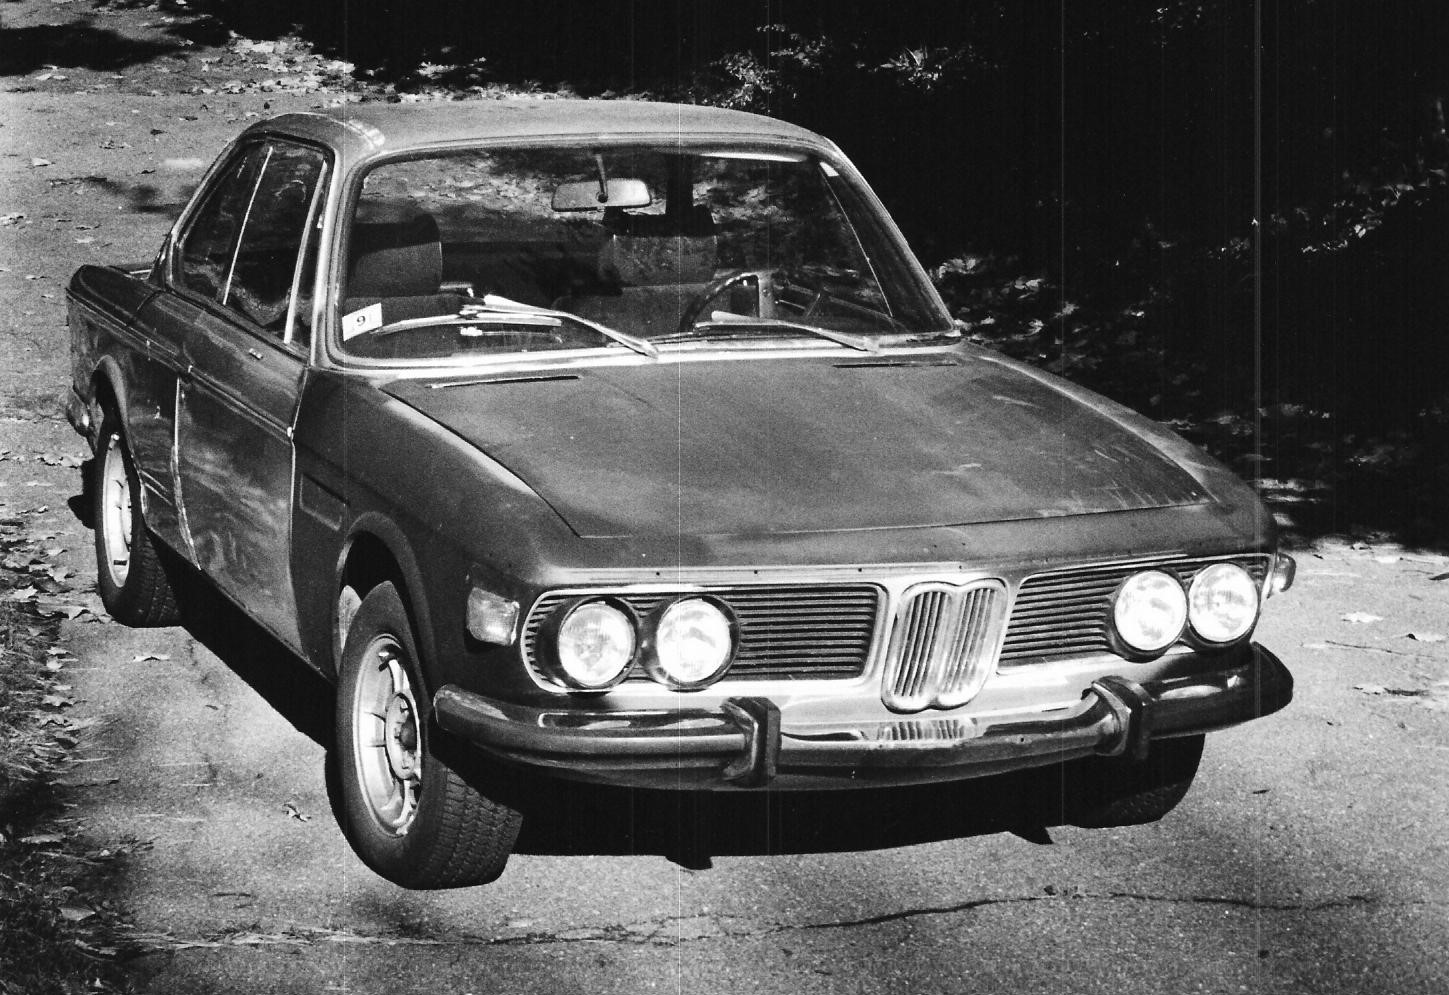 My 3.0CSi in 1987, waiting for my bank account to be replenished.